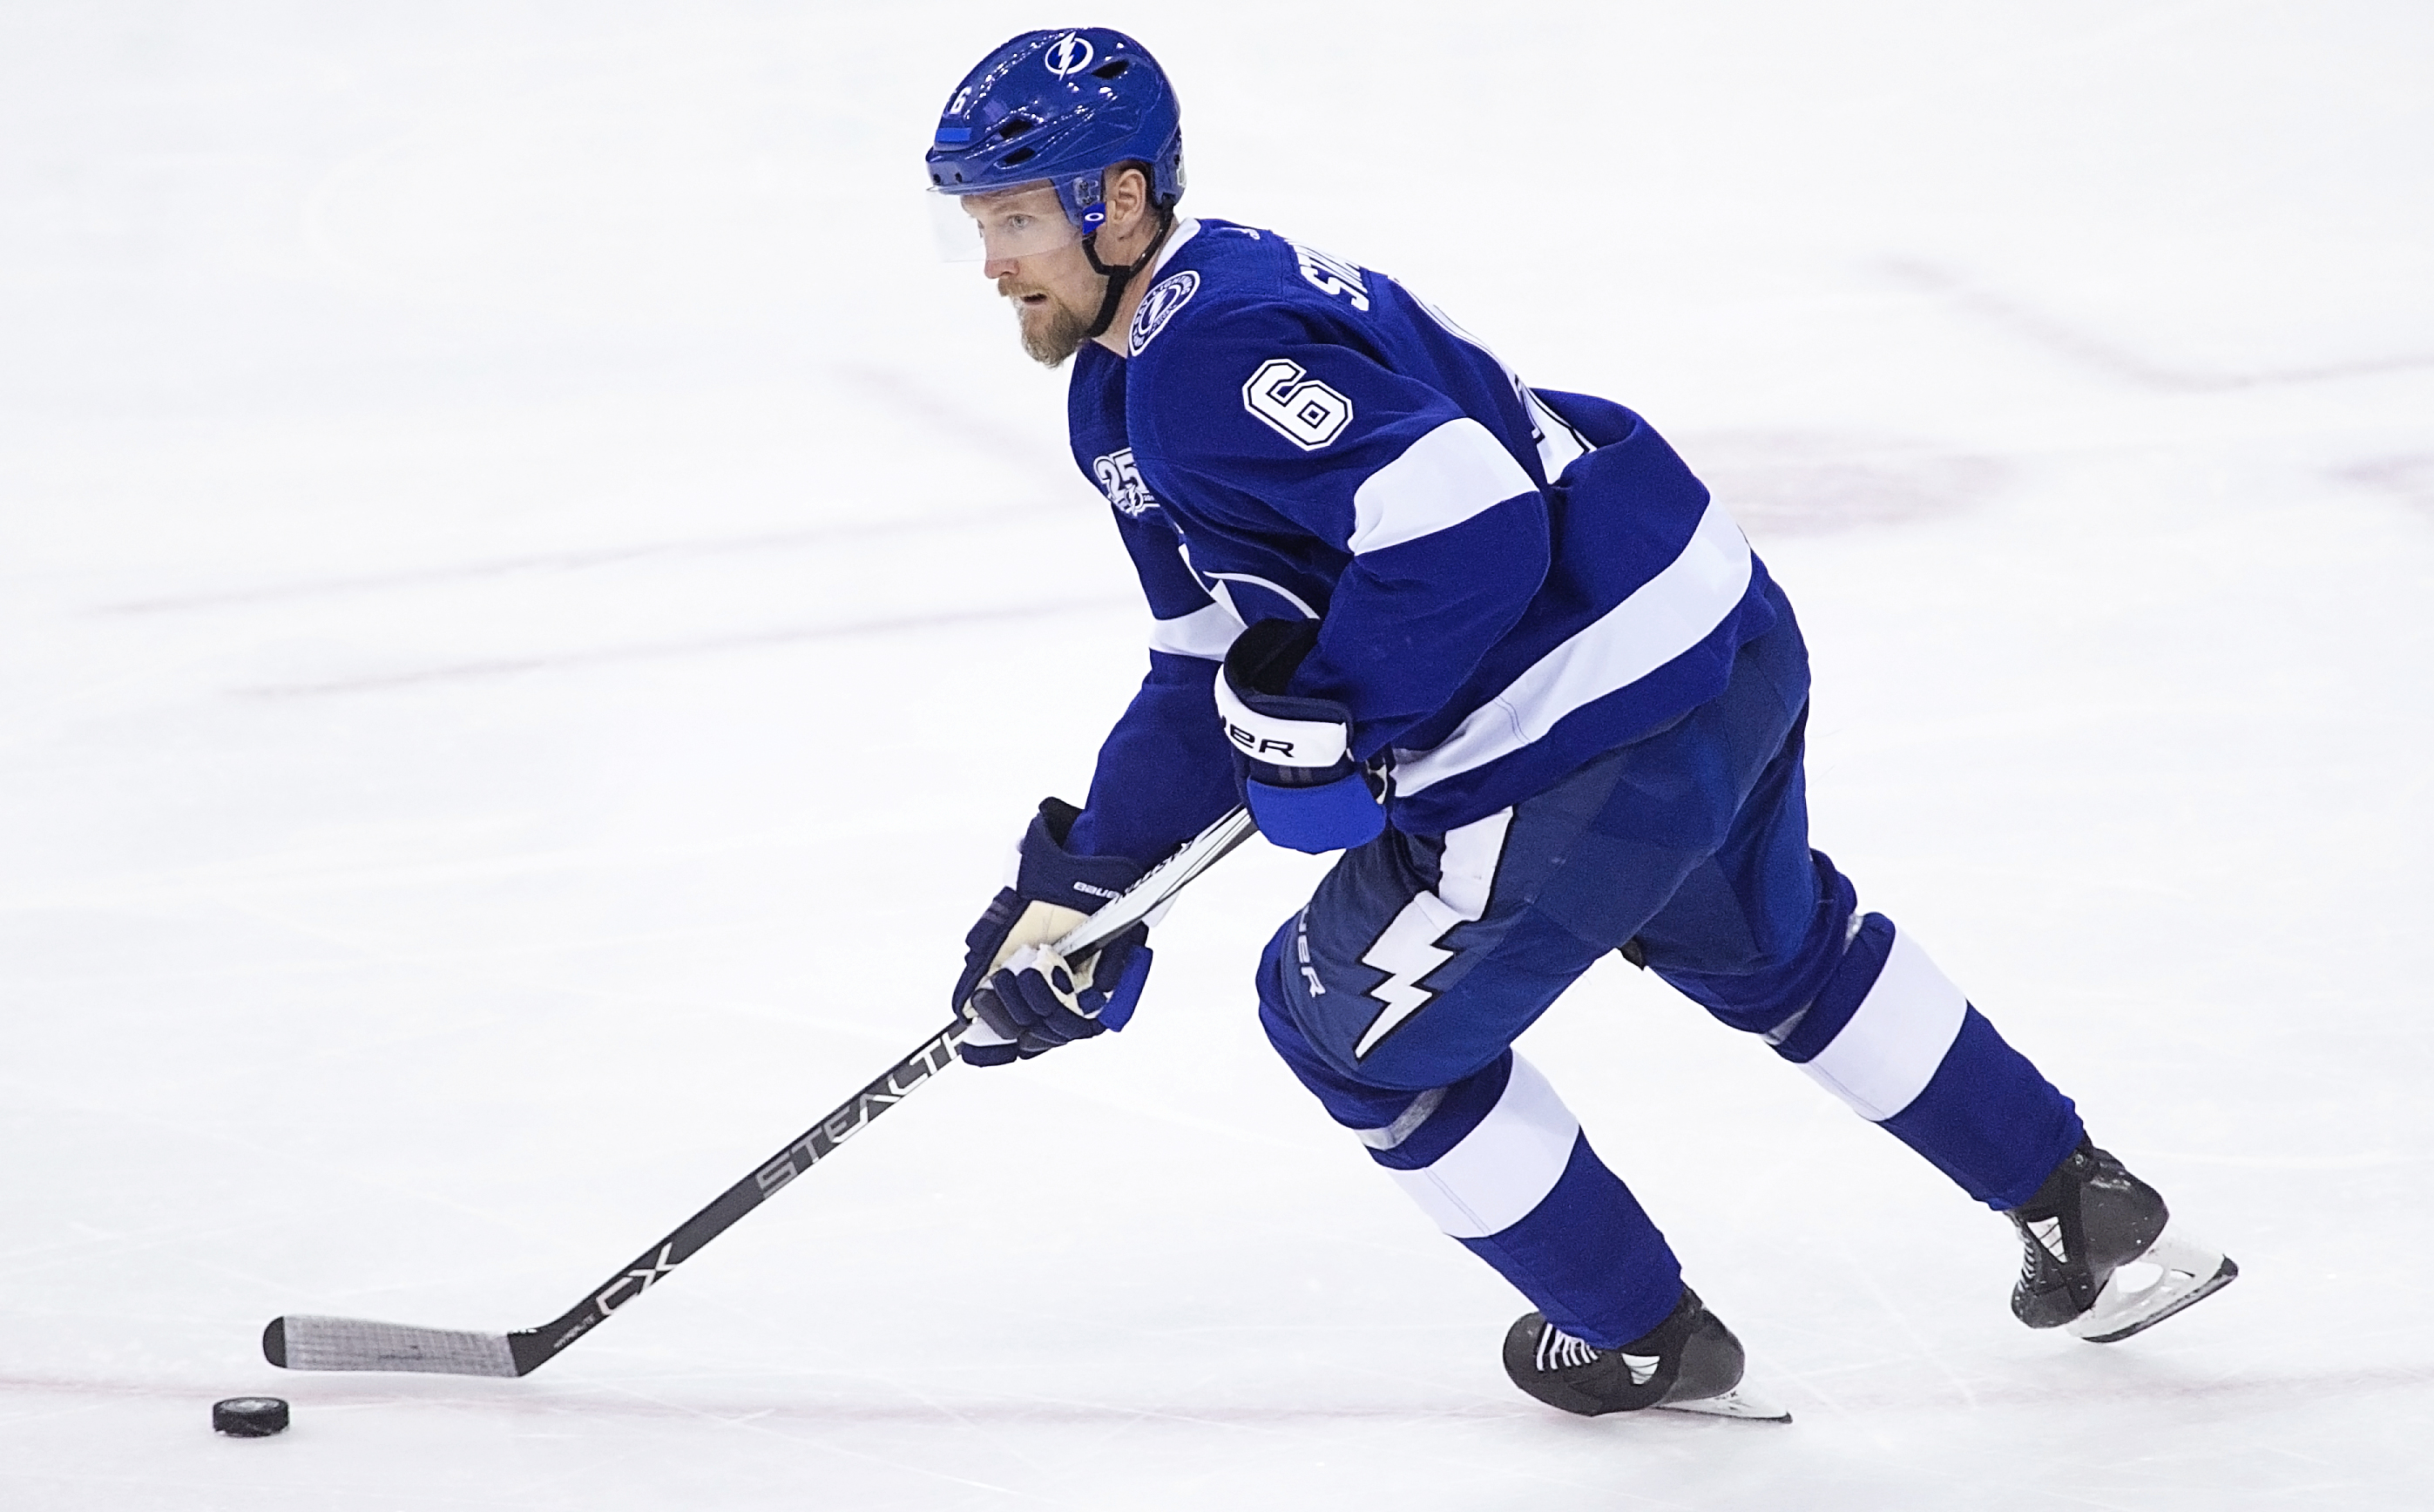 Stralman moves up the ice for Tampa Bay./CARMEN MANDATO